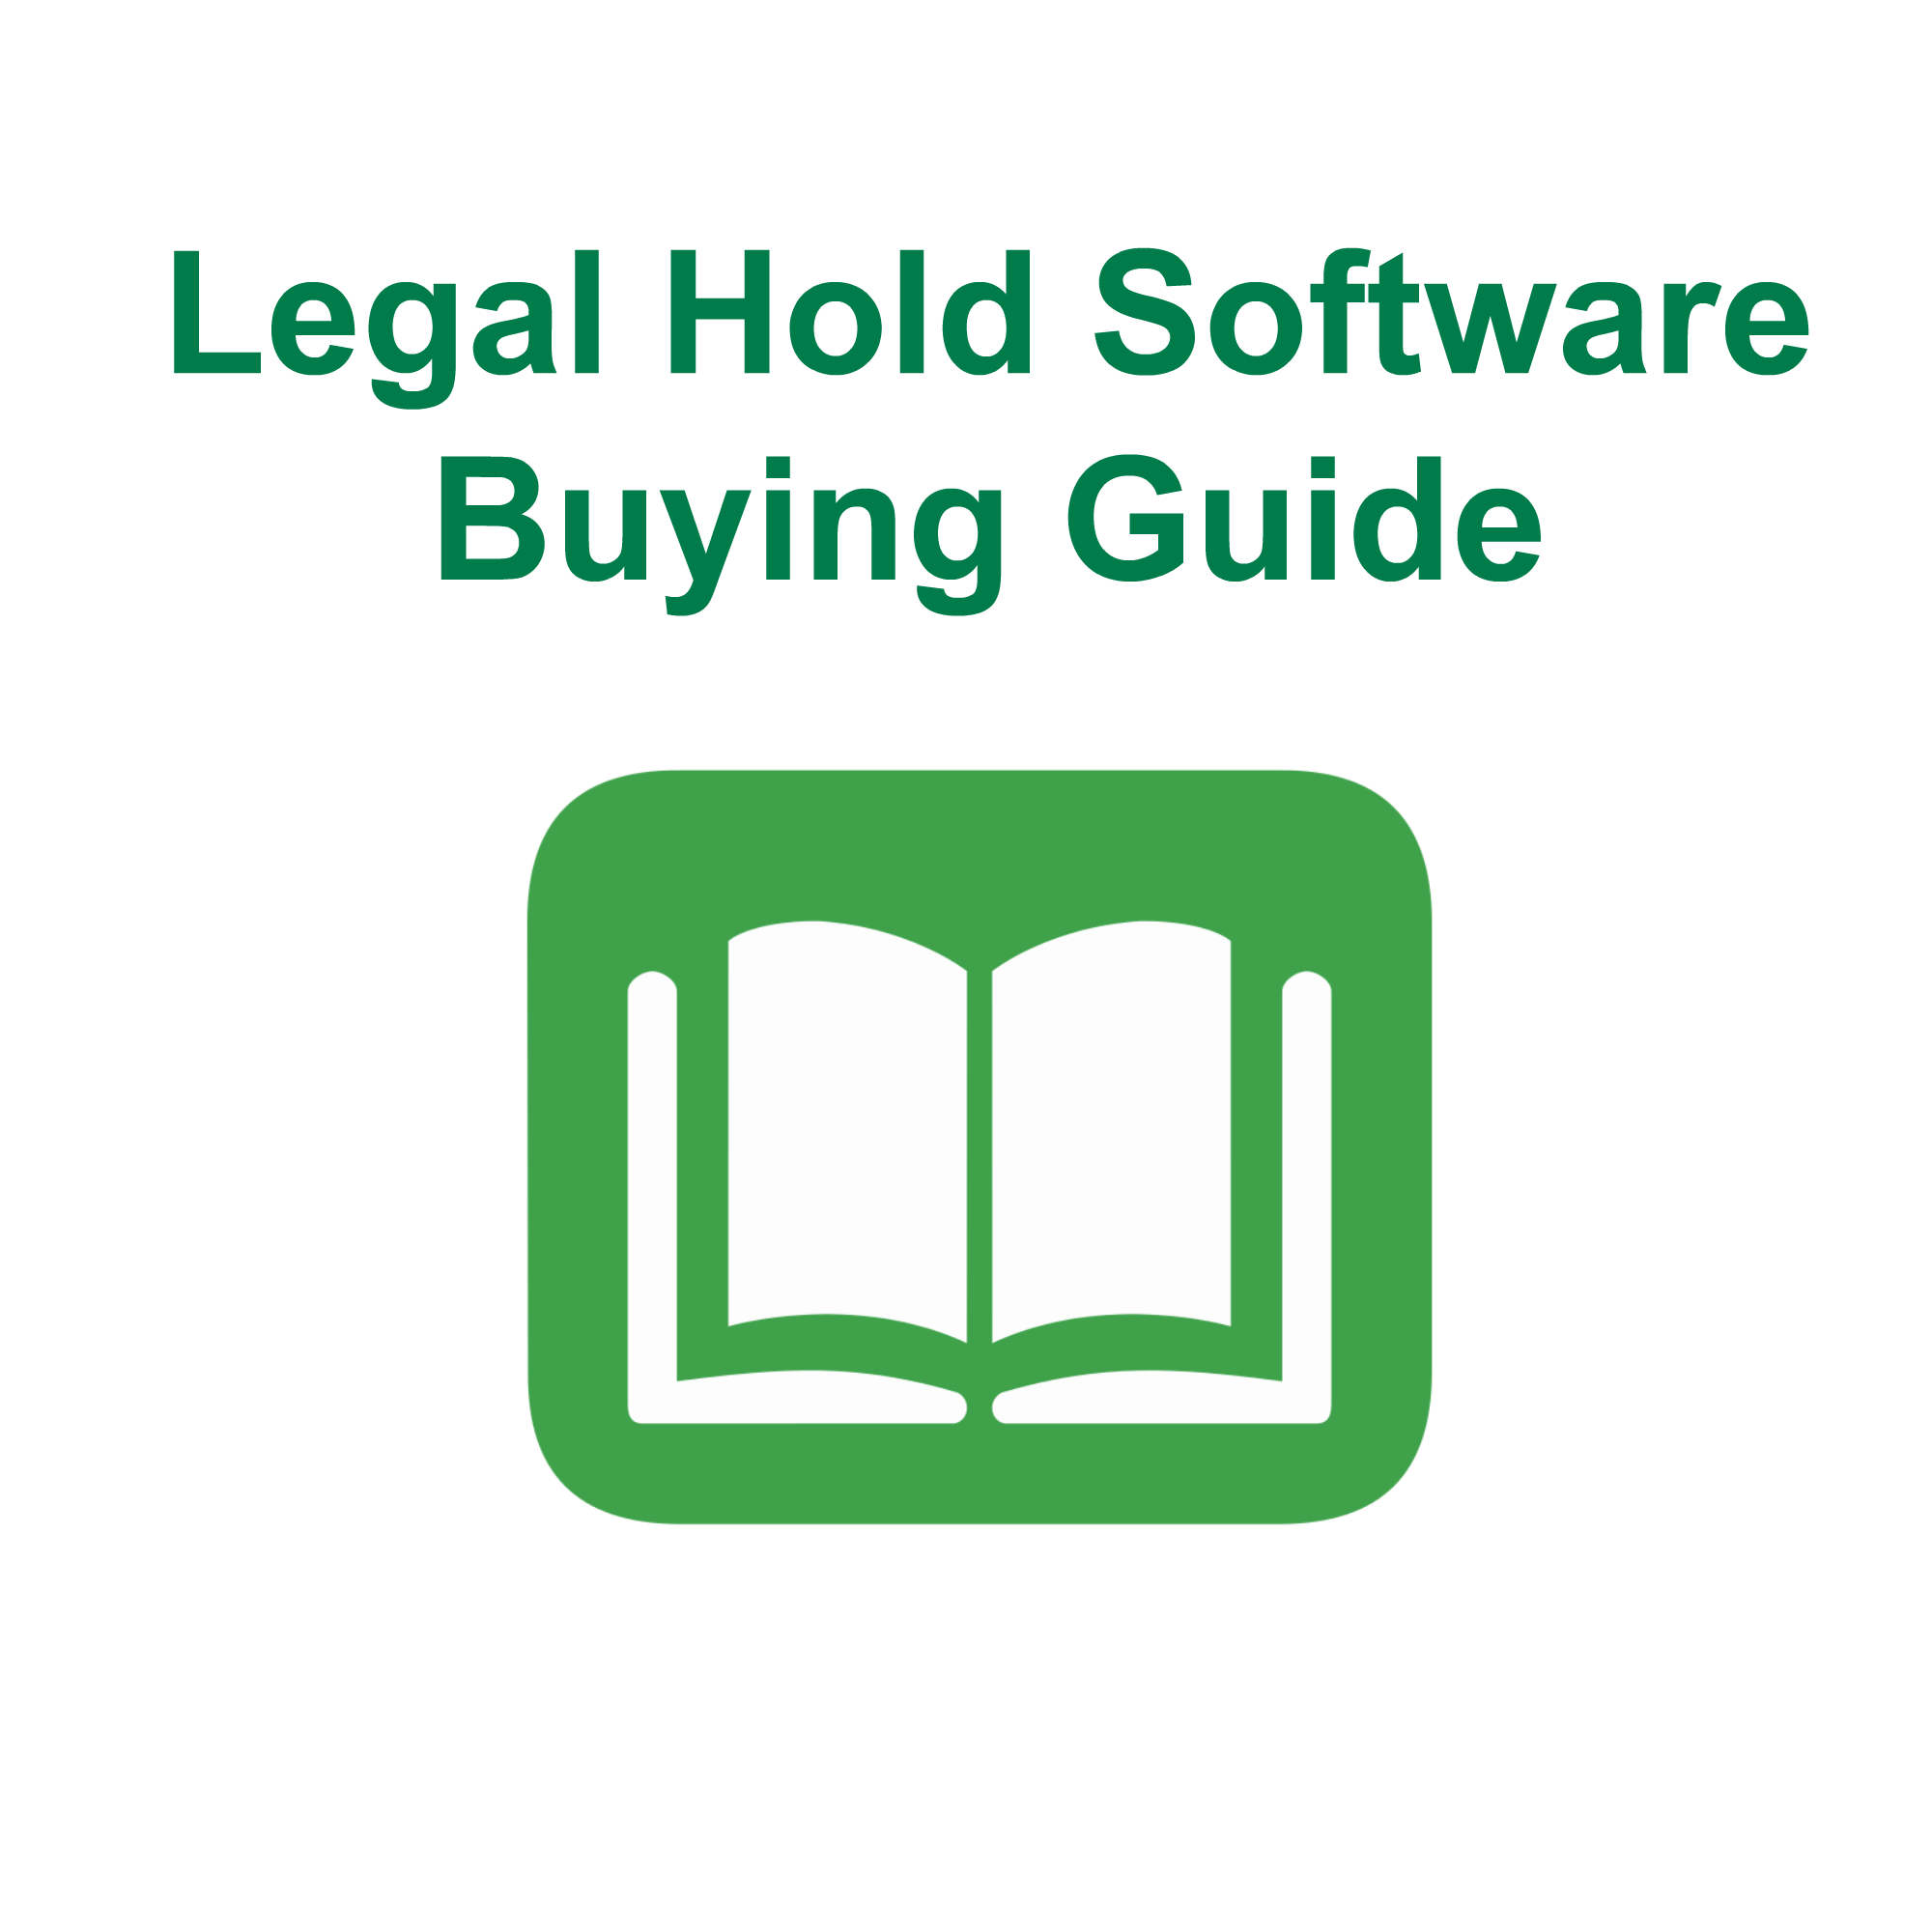 Legal Hold Software Buying Guide